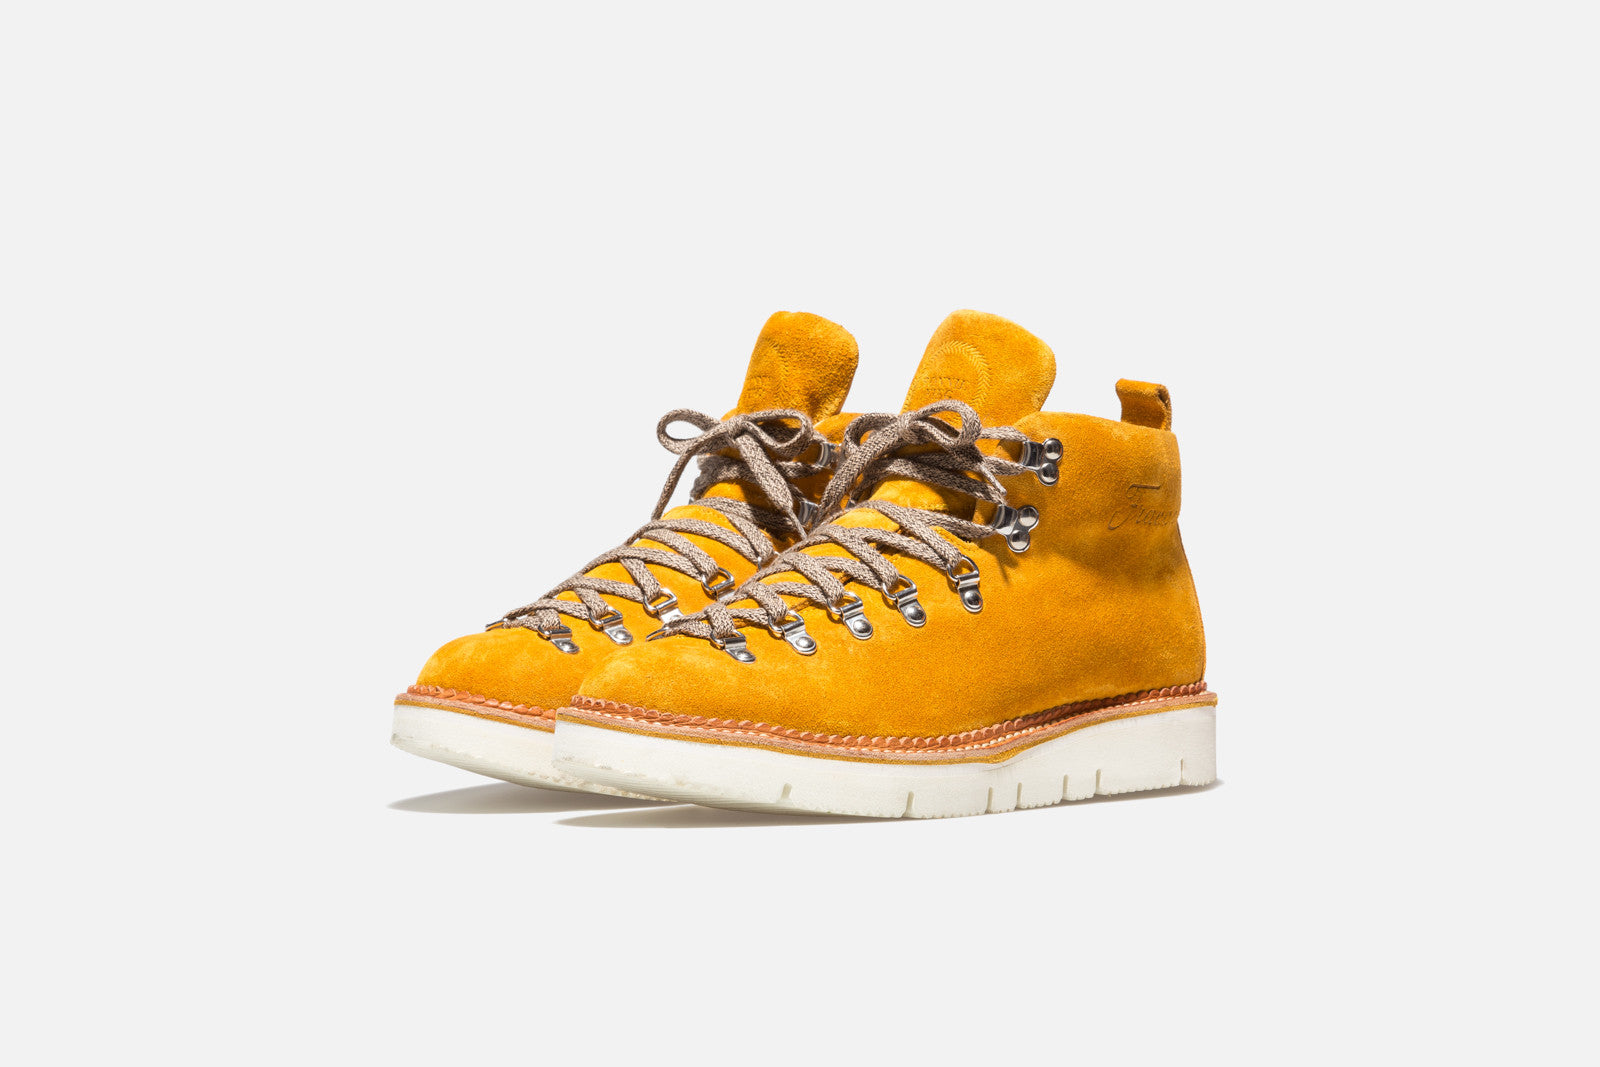 Ronnie Fieg x Fracap RF120 Hiking Boot - Mustard